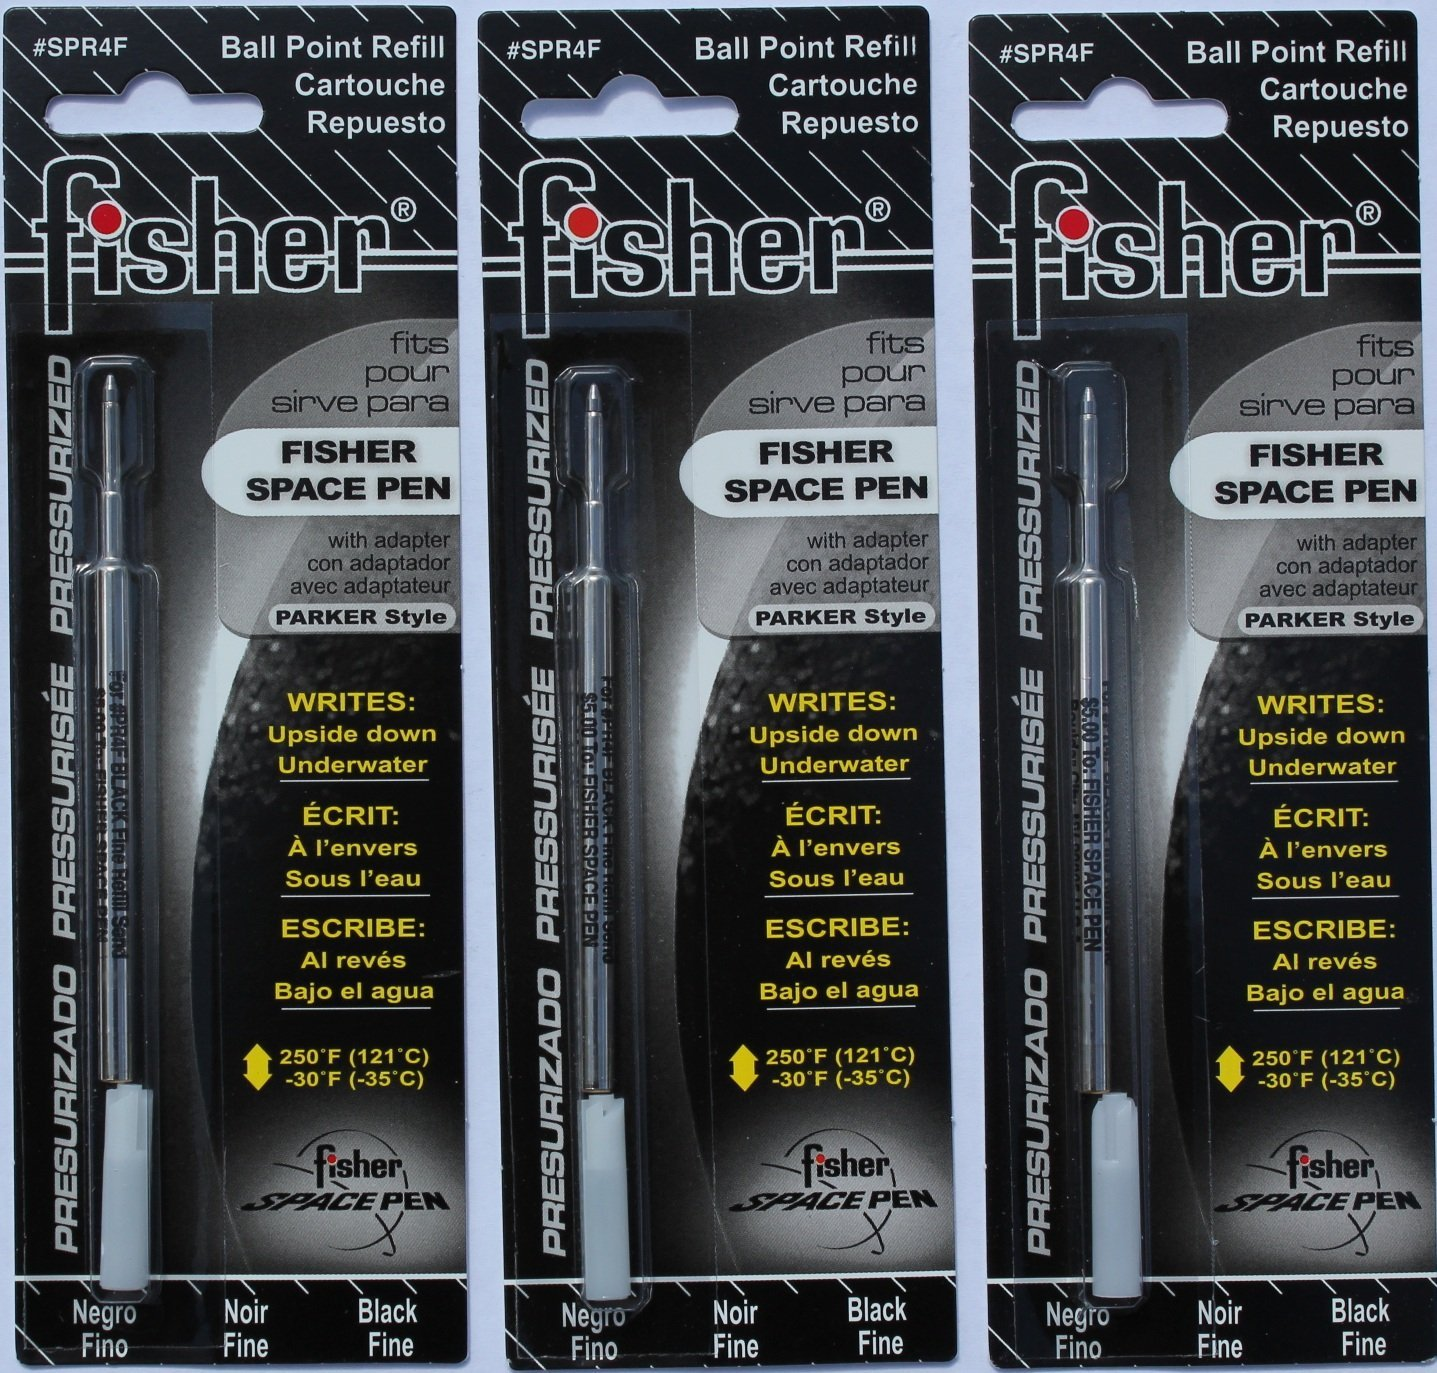 Fisher Space Pen SPR4F Black Ink Fine Point Refill - 3 Pack